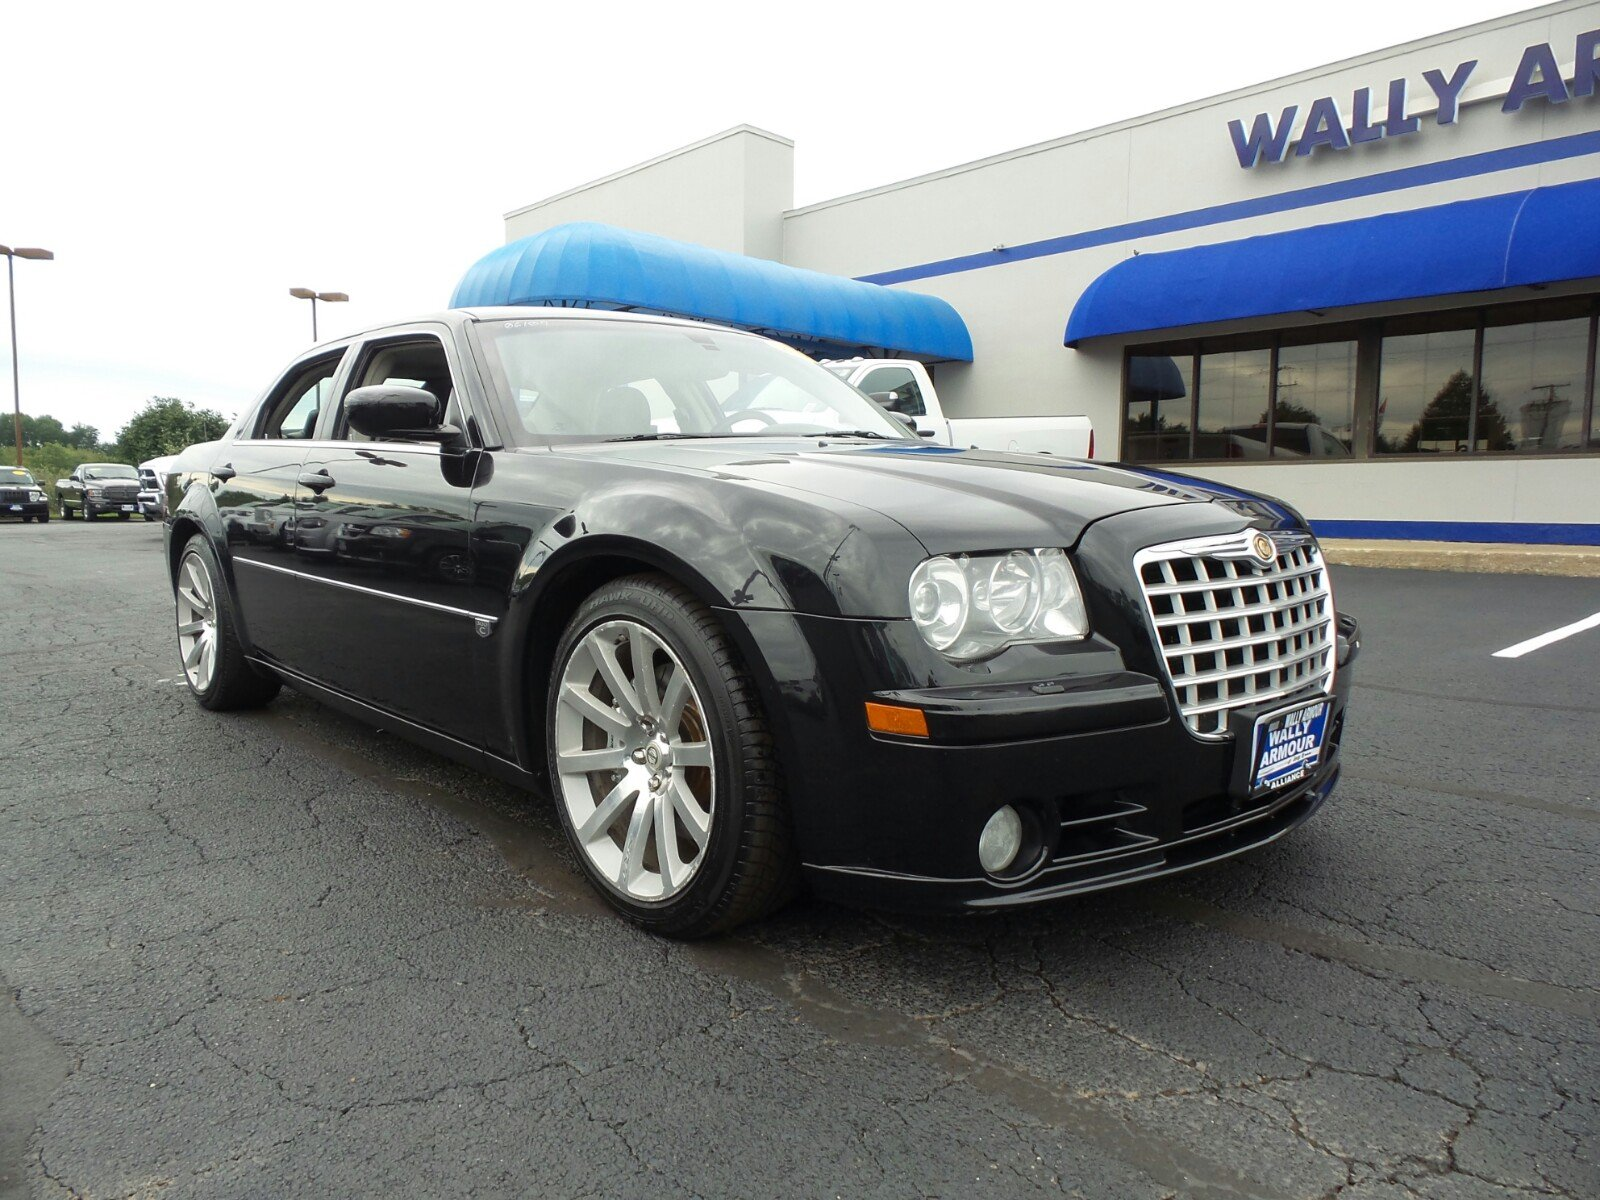 Pre-Owned 2006 Chrysler 300 C SRT8 4dr Car in Alliance #76396B ...